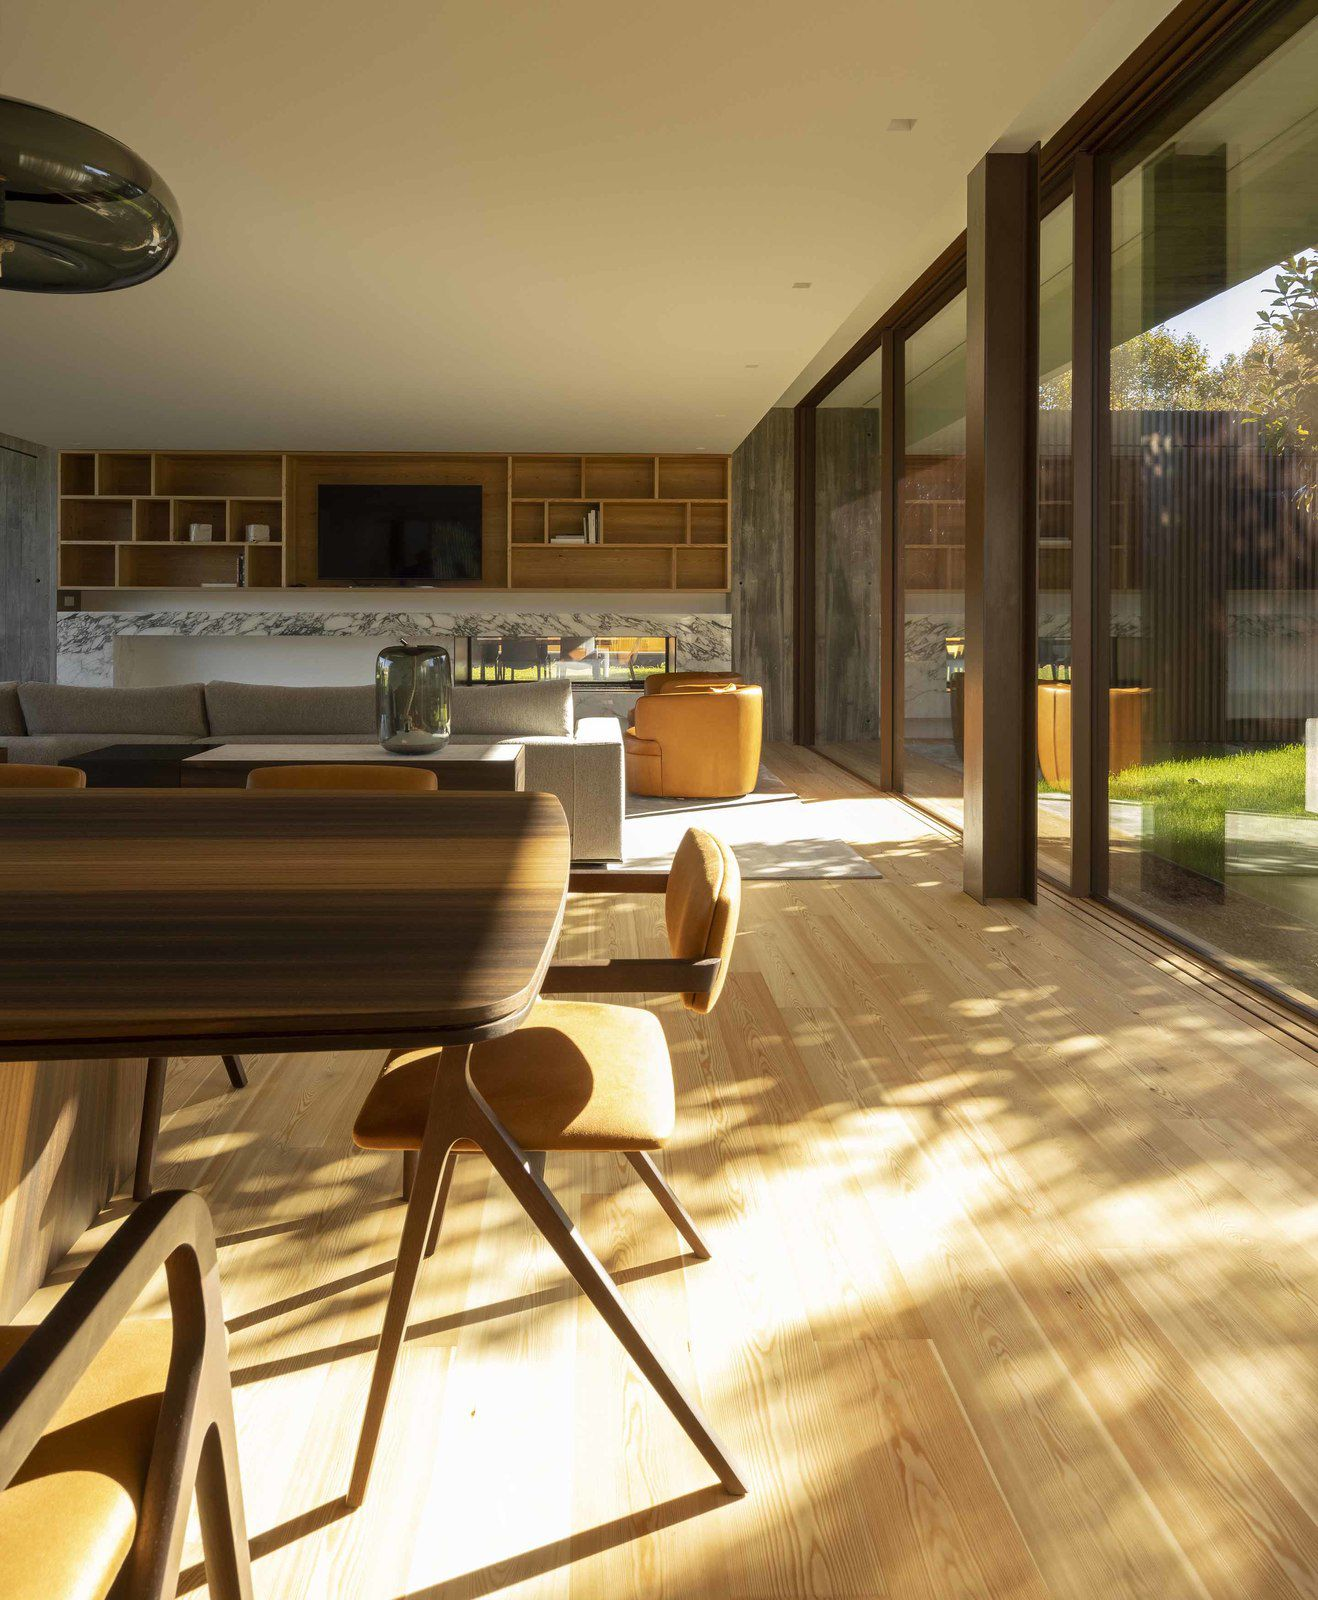 RCR HOUSE IN PORTUGAL BY VISIOARQ ARQUITECTOS